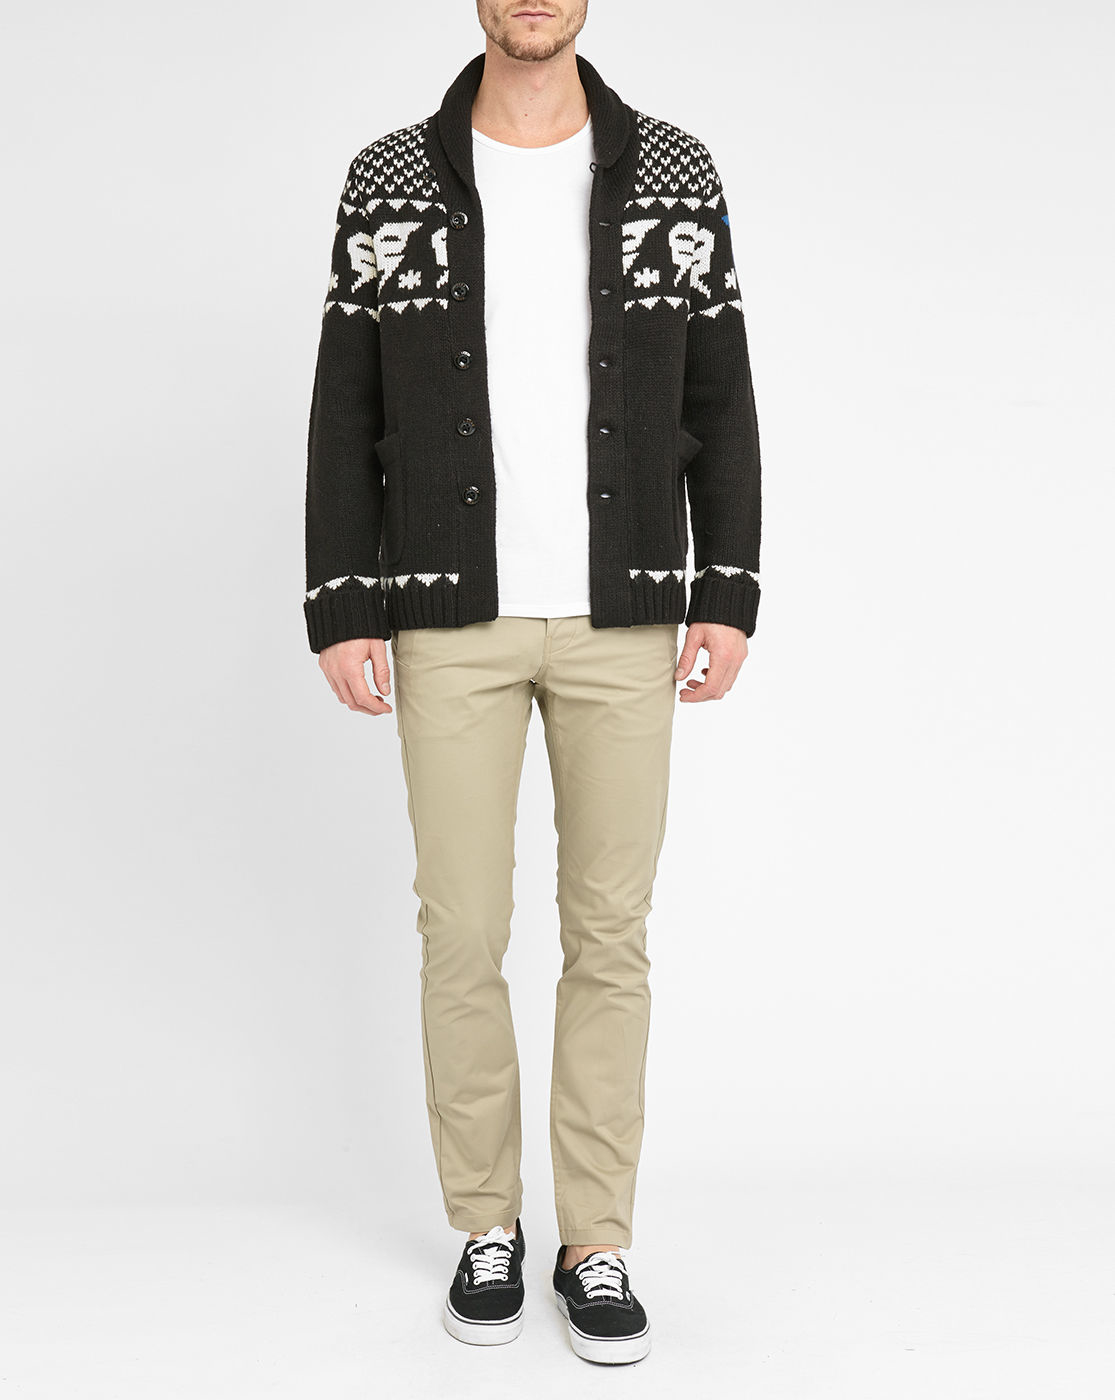 g star raw black pr draha jacquard cardigan in black for. Black Bedroom Furniture Sets. Home Design Ideas